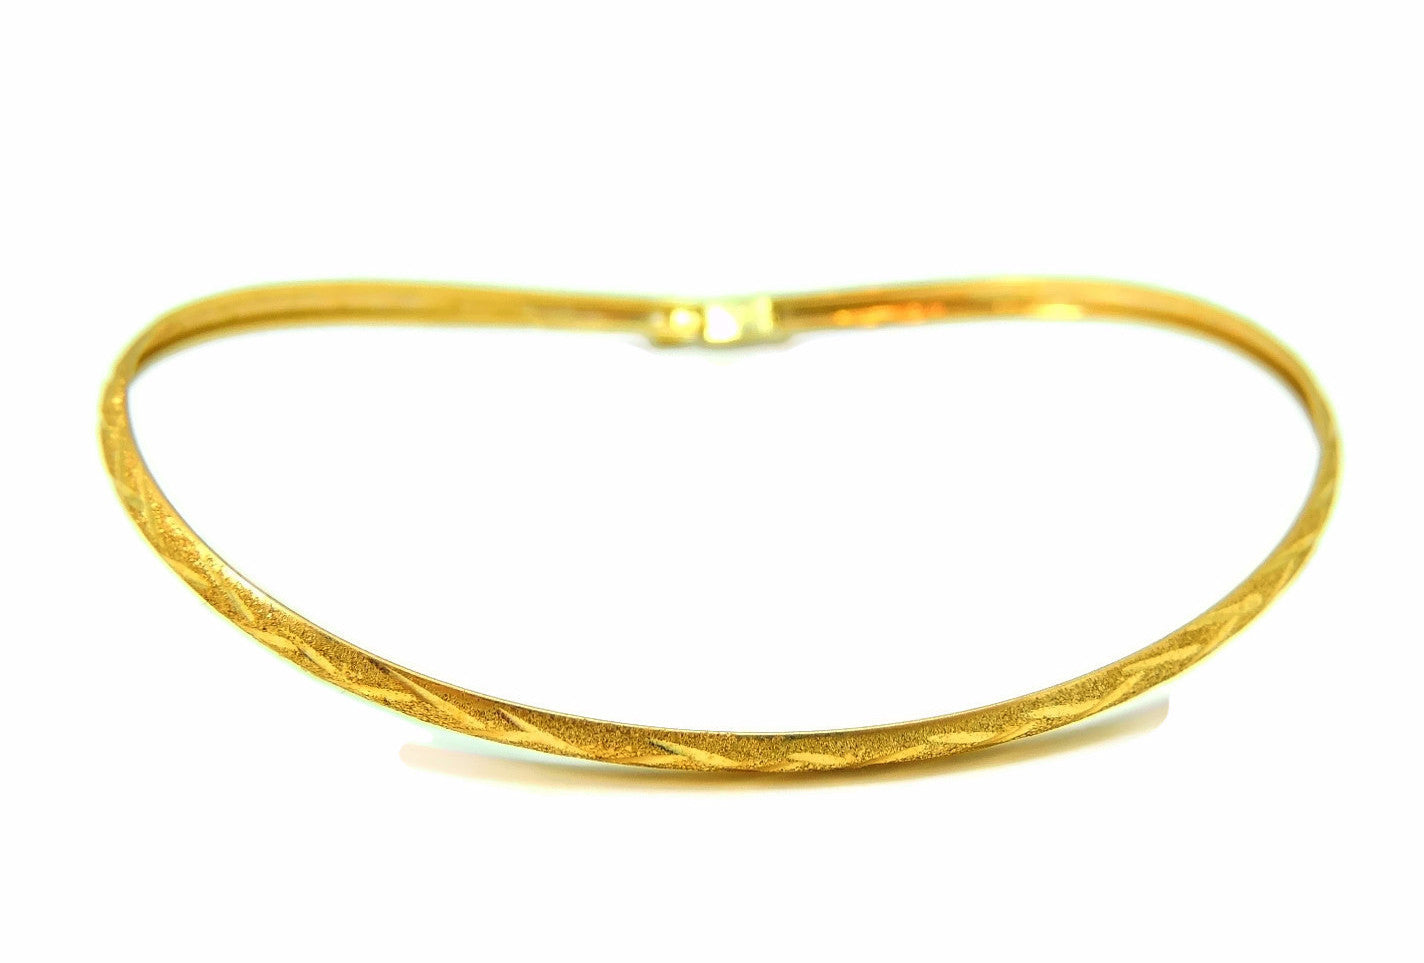 diamond bangles with accents gold clasp closure bangle and yellow bracelet pin box